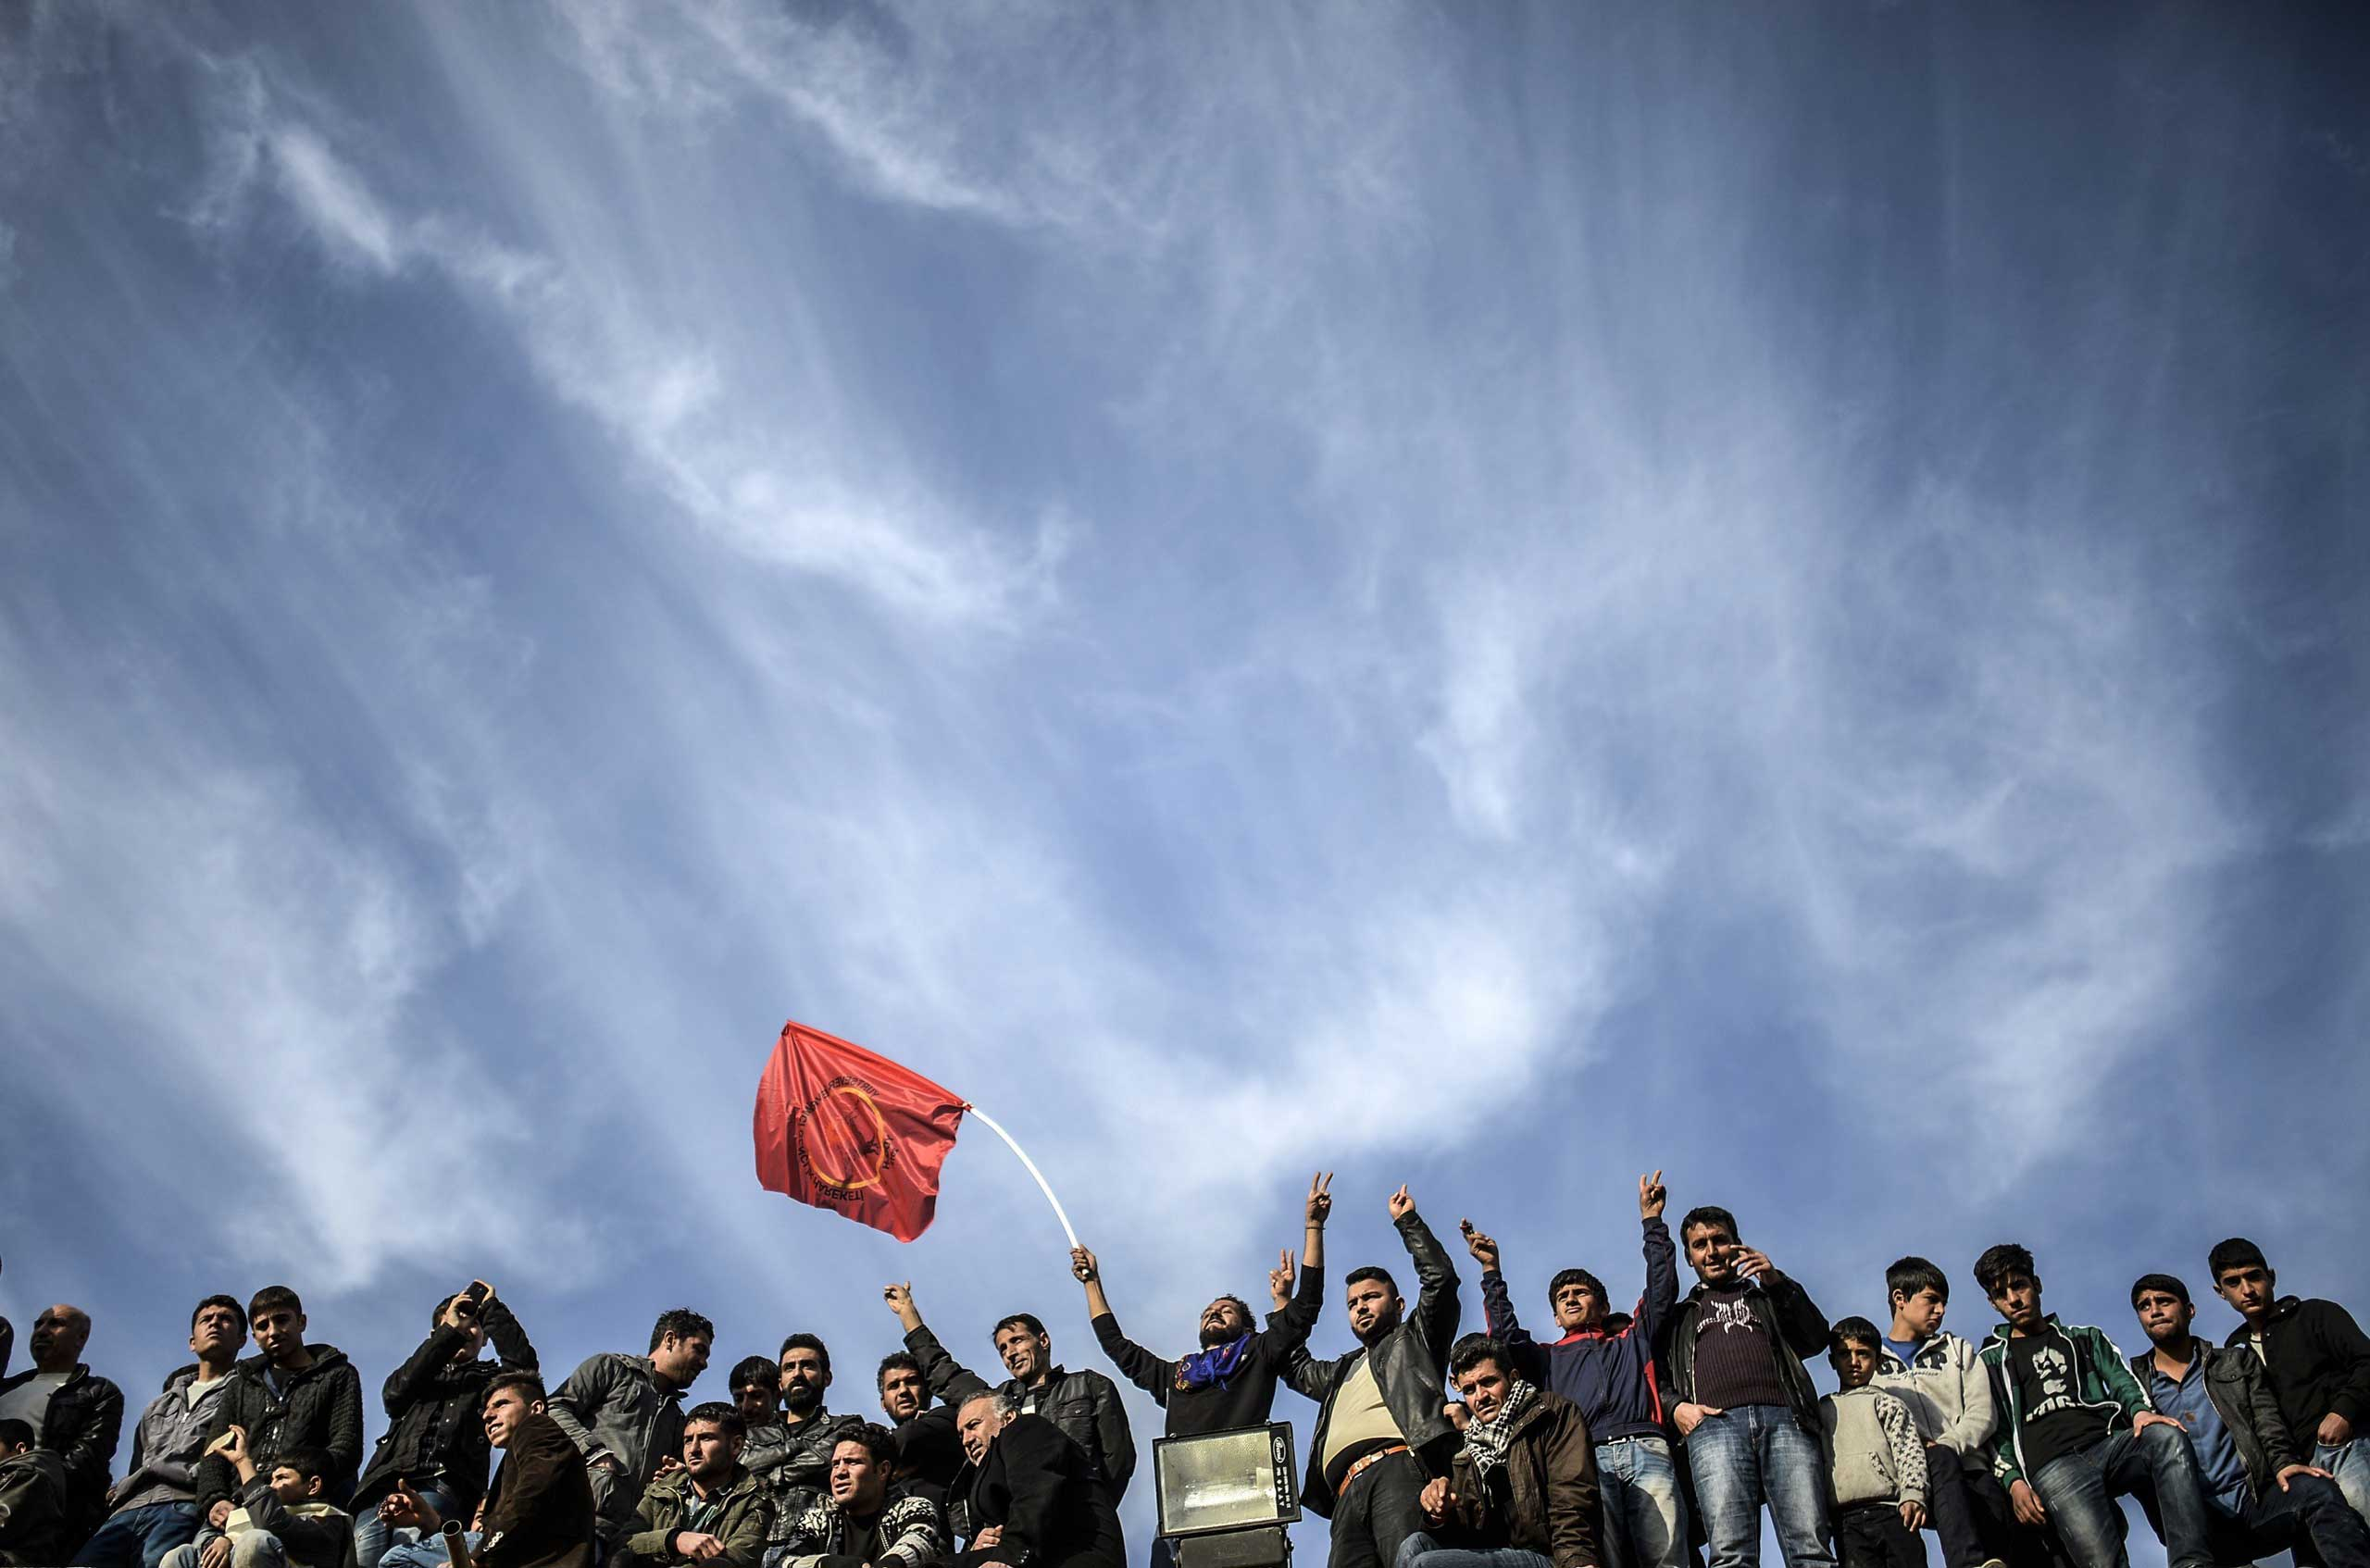 Kurdish people celebrate the declared victory over ISIS for control of Kobani near the Turkish-Syrian border in Suruc, Turkey, on Jan. 27, 2015.